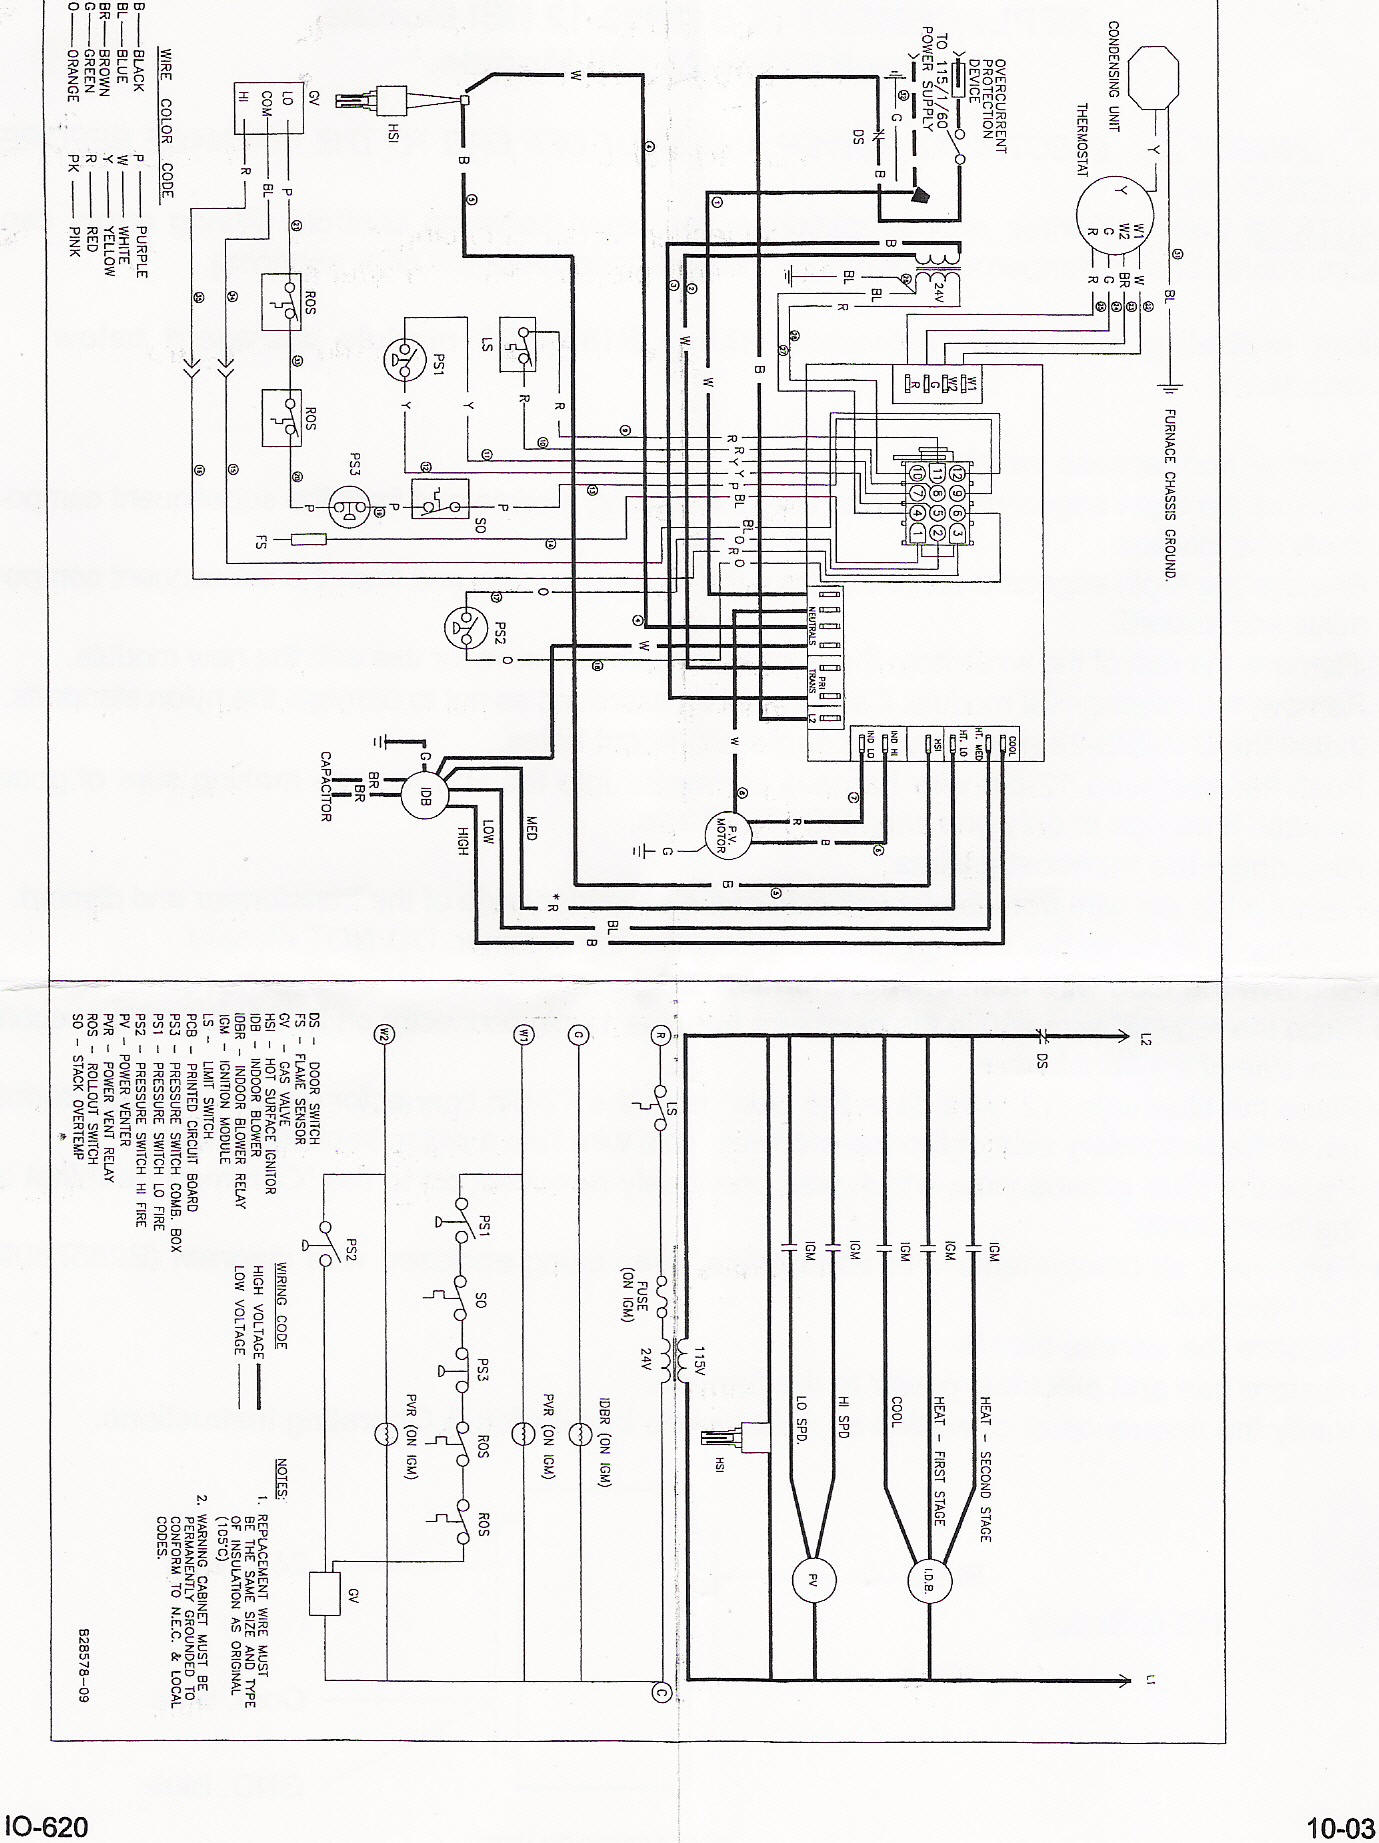 goodma2 instr goodman control board b18099 23 instructions goodman furnace manual wiring diagram at honlapkeszites.co